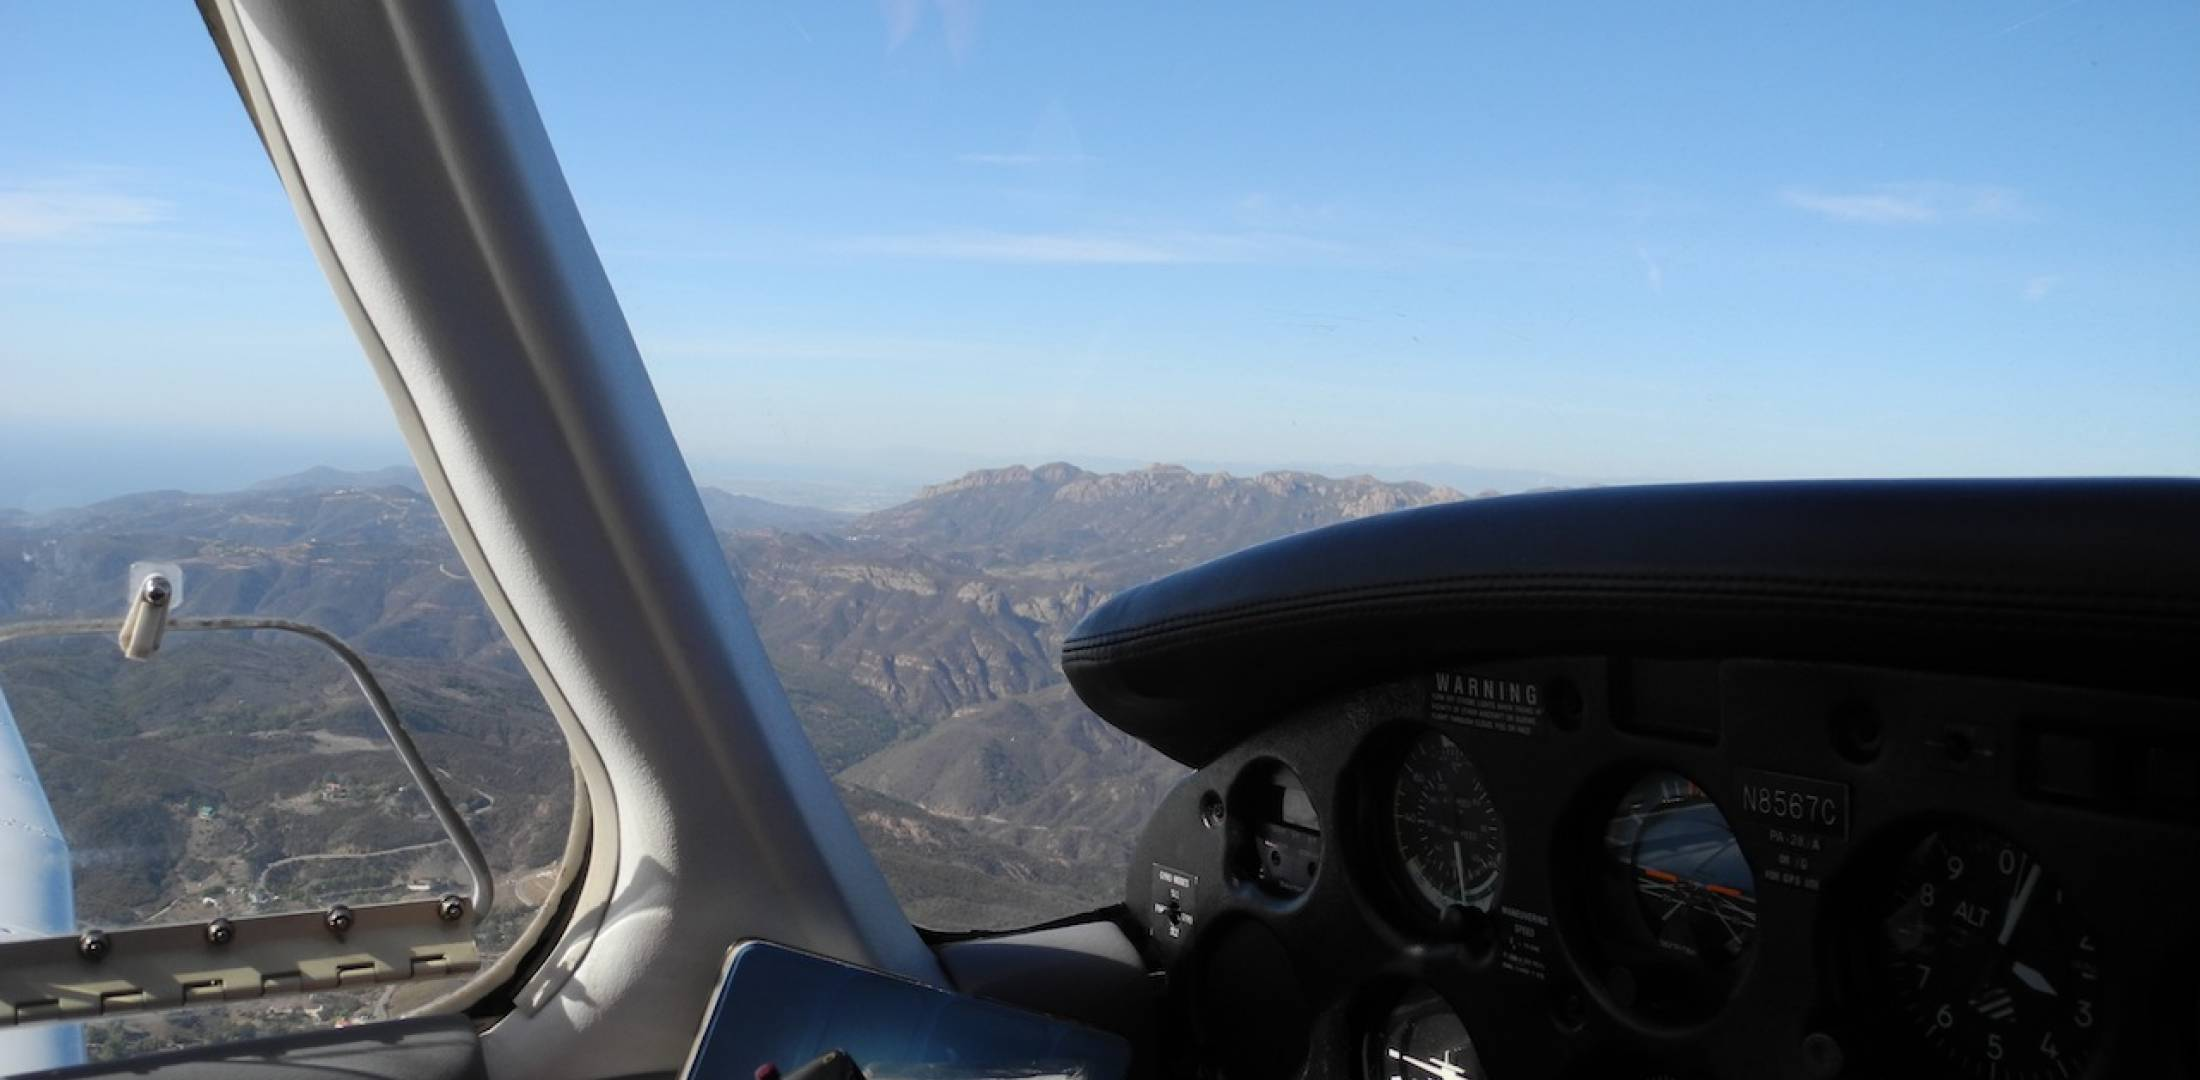 Flying over the Santa Monica Mountains